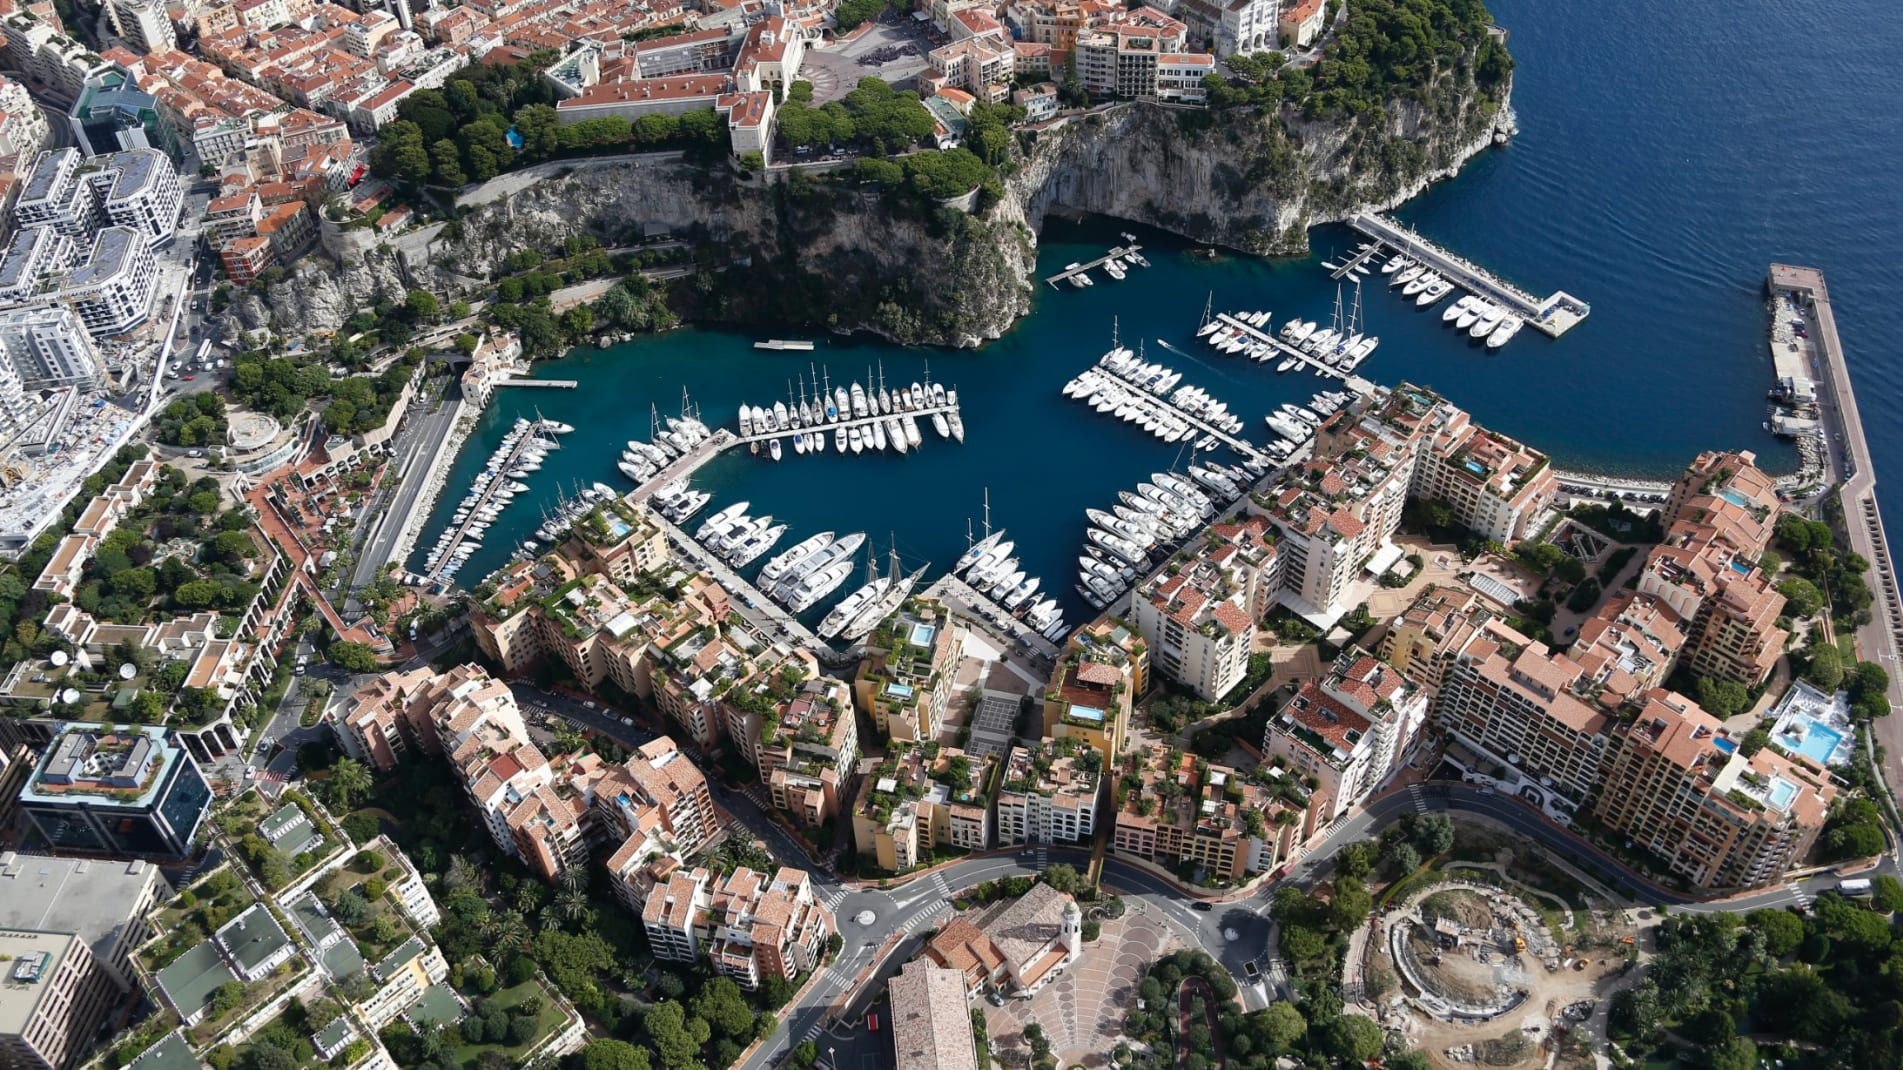 An aerial view of Monaco harbor.